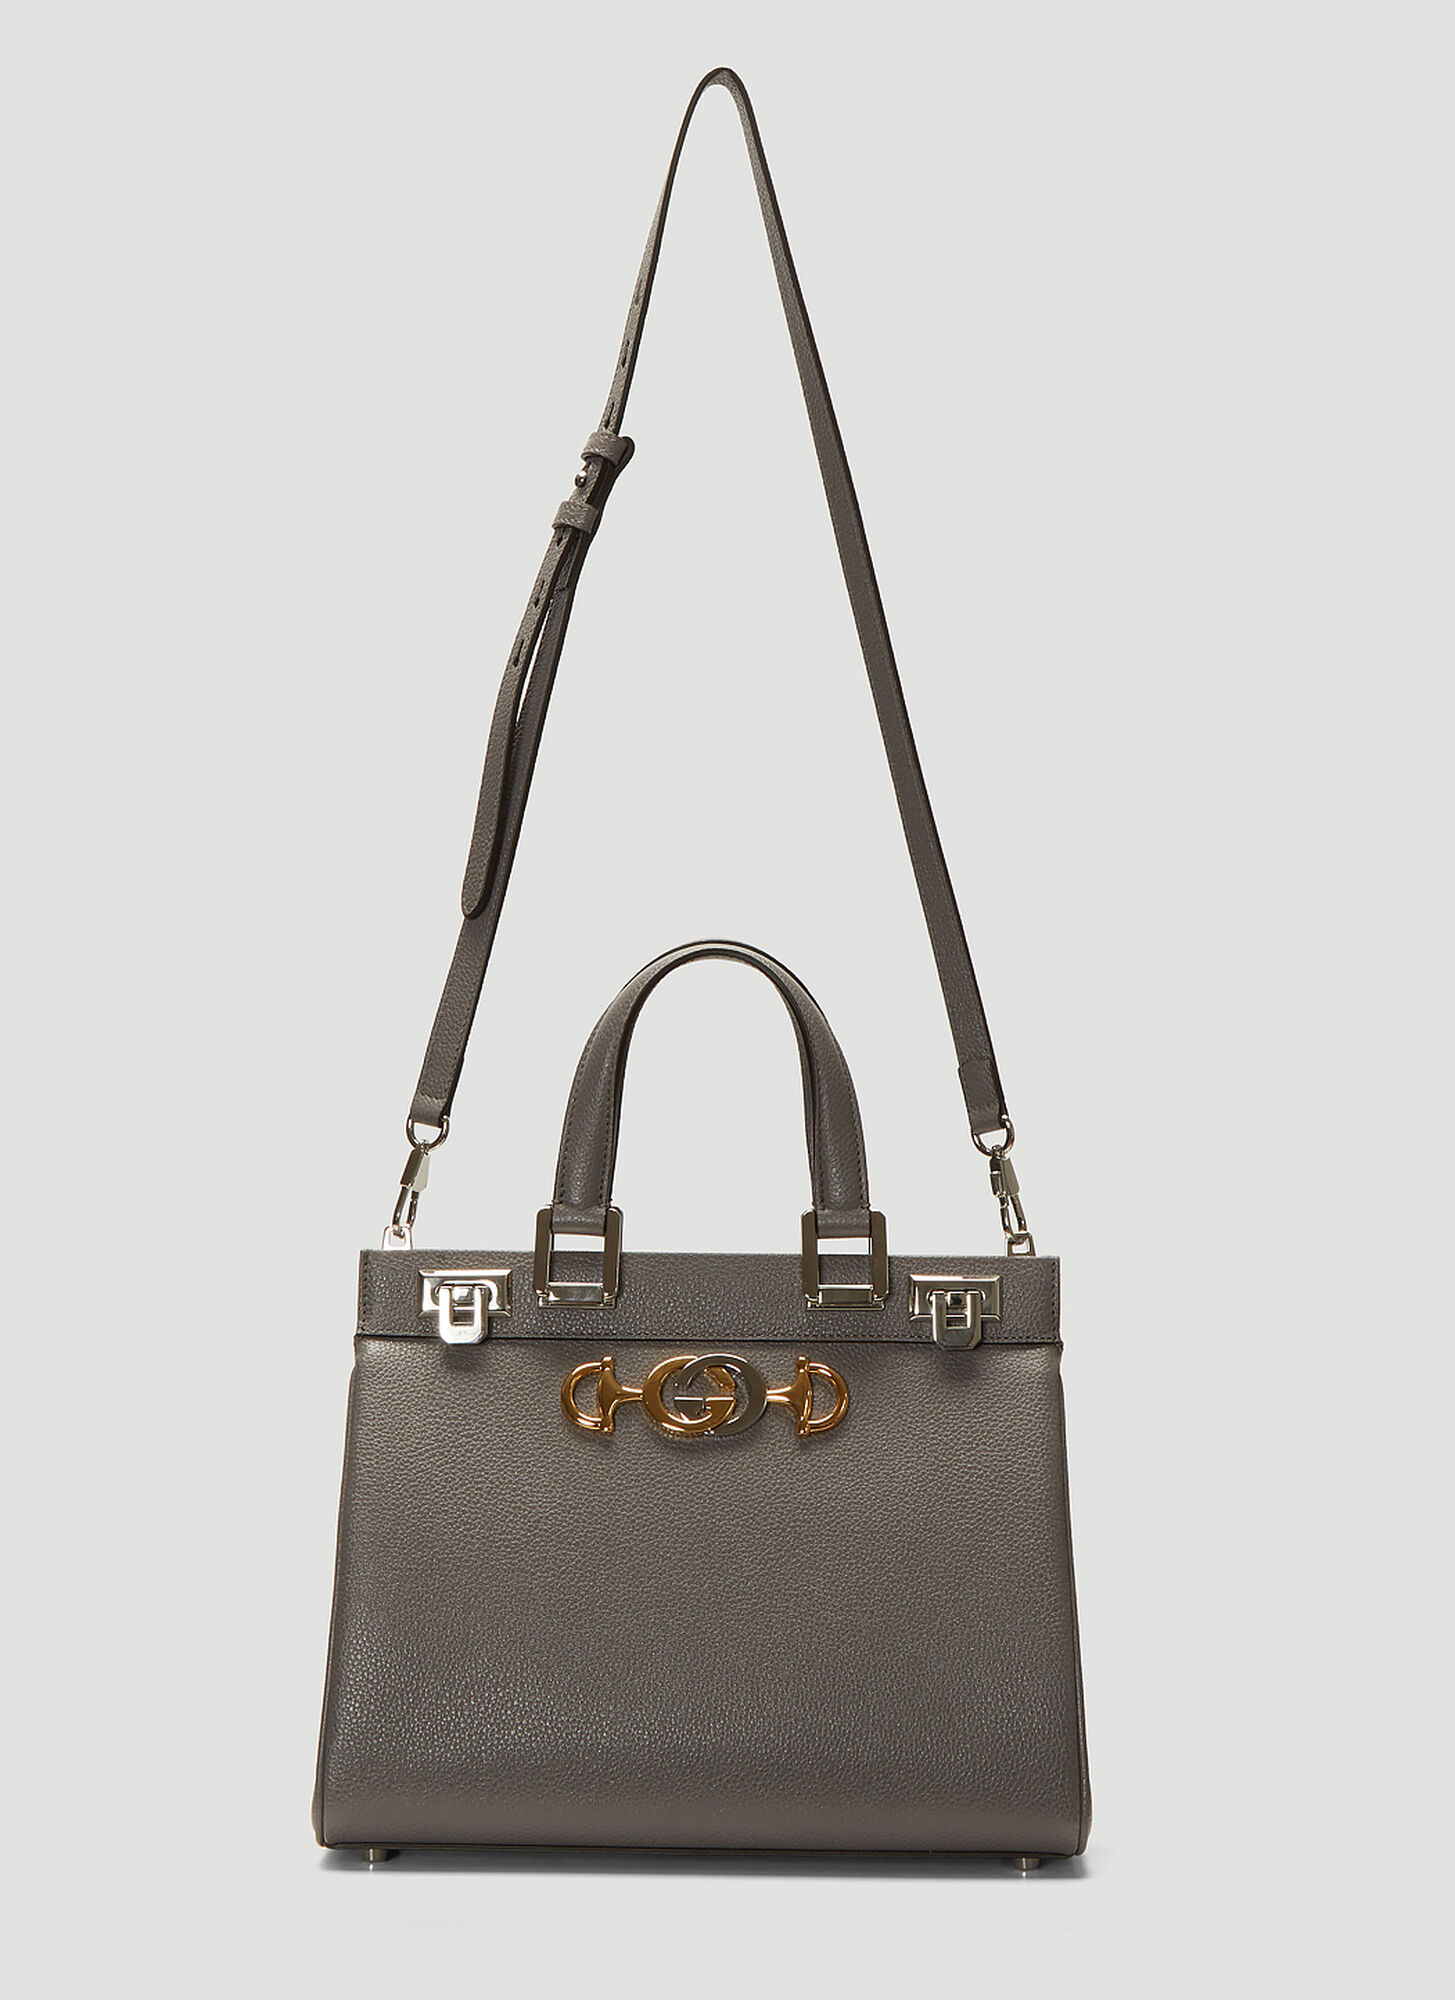 Photo of Gucci Zumi Top Handle Bag in Grey - Gucci Shoulder Bags